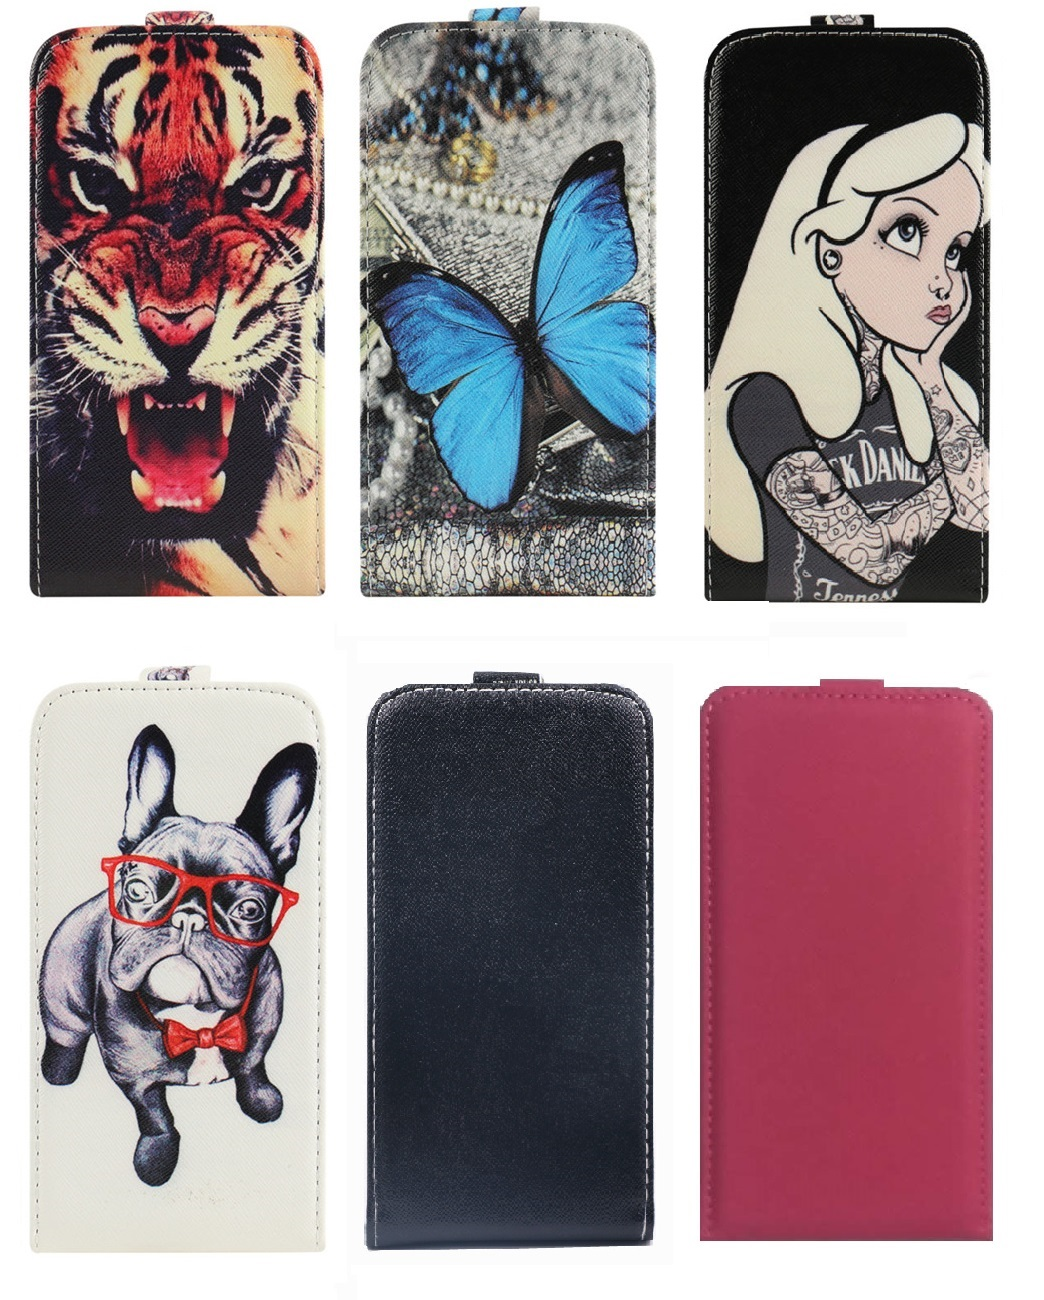 Yooyour Cartoon Printed Flip PU Leather Case Cover περίβλημα περιβλήματος για Philips S337 για Philips Xenium V787 για Philips S326